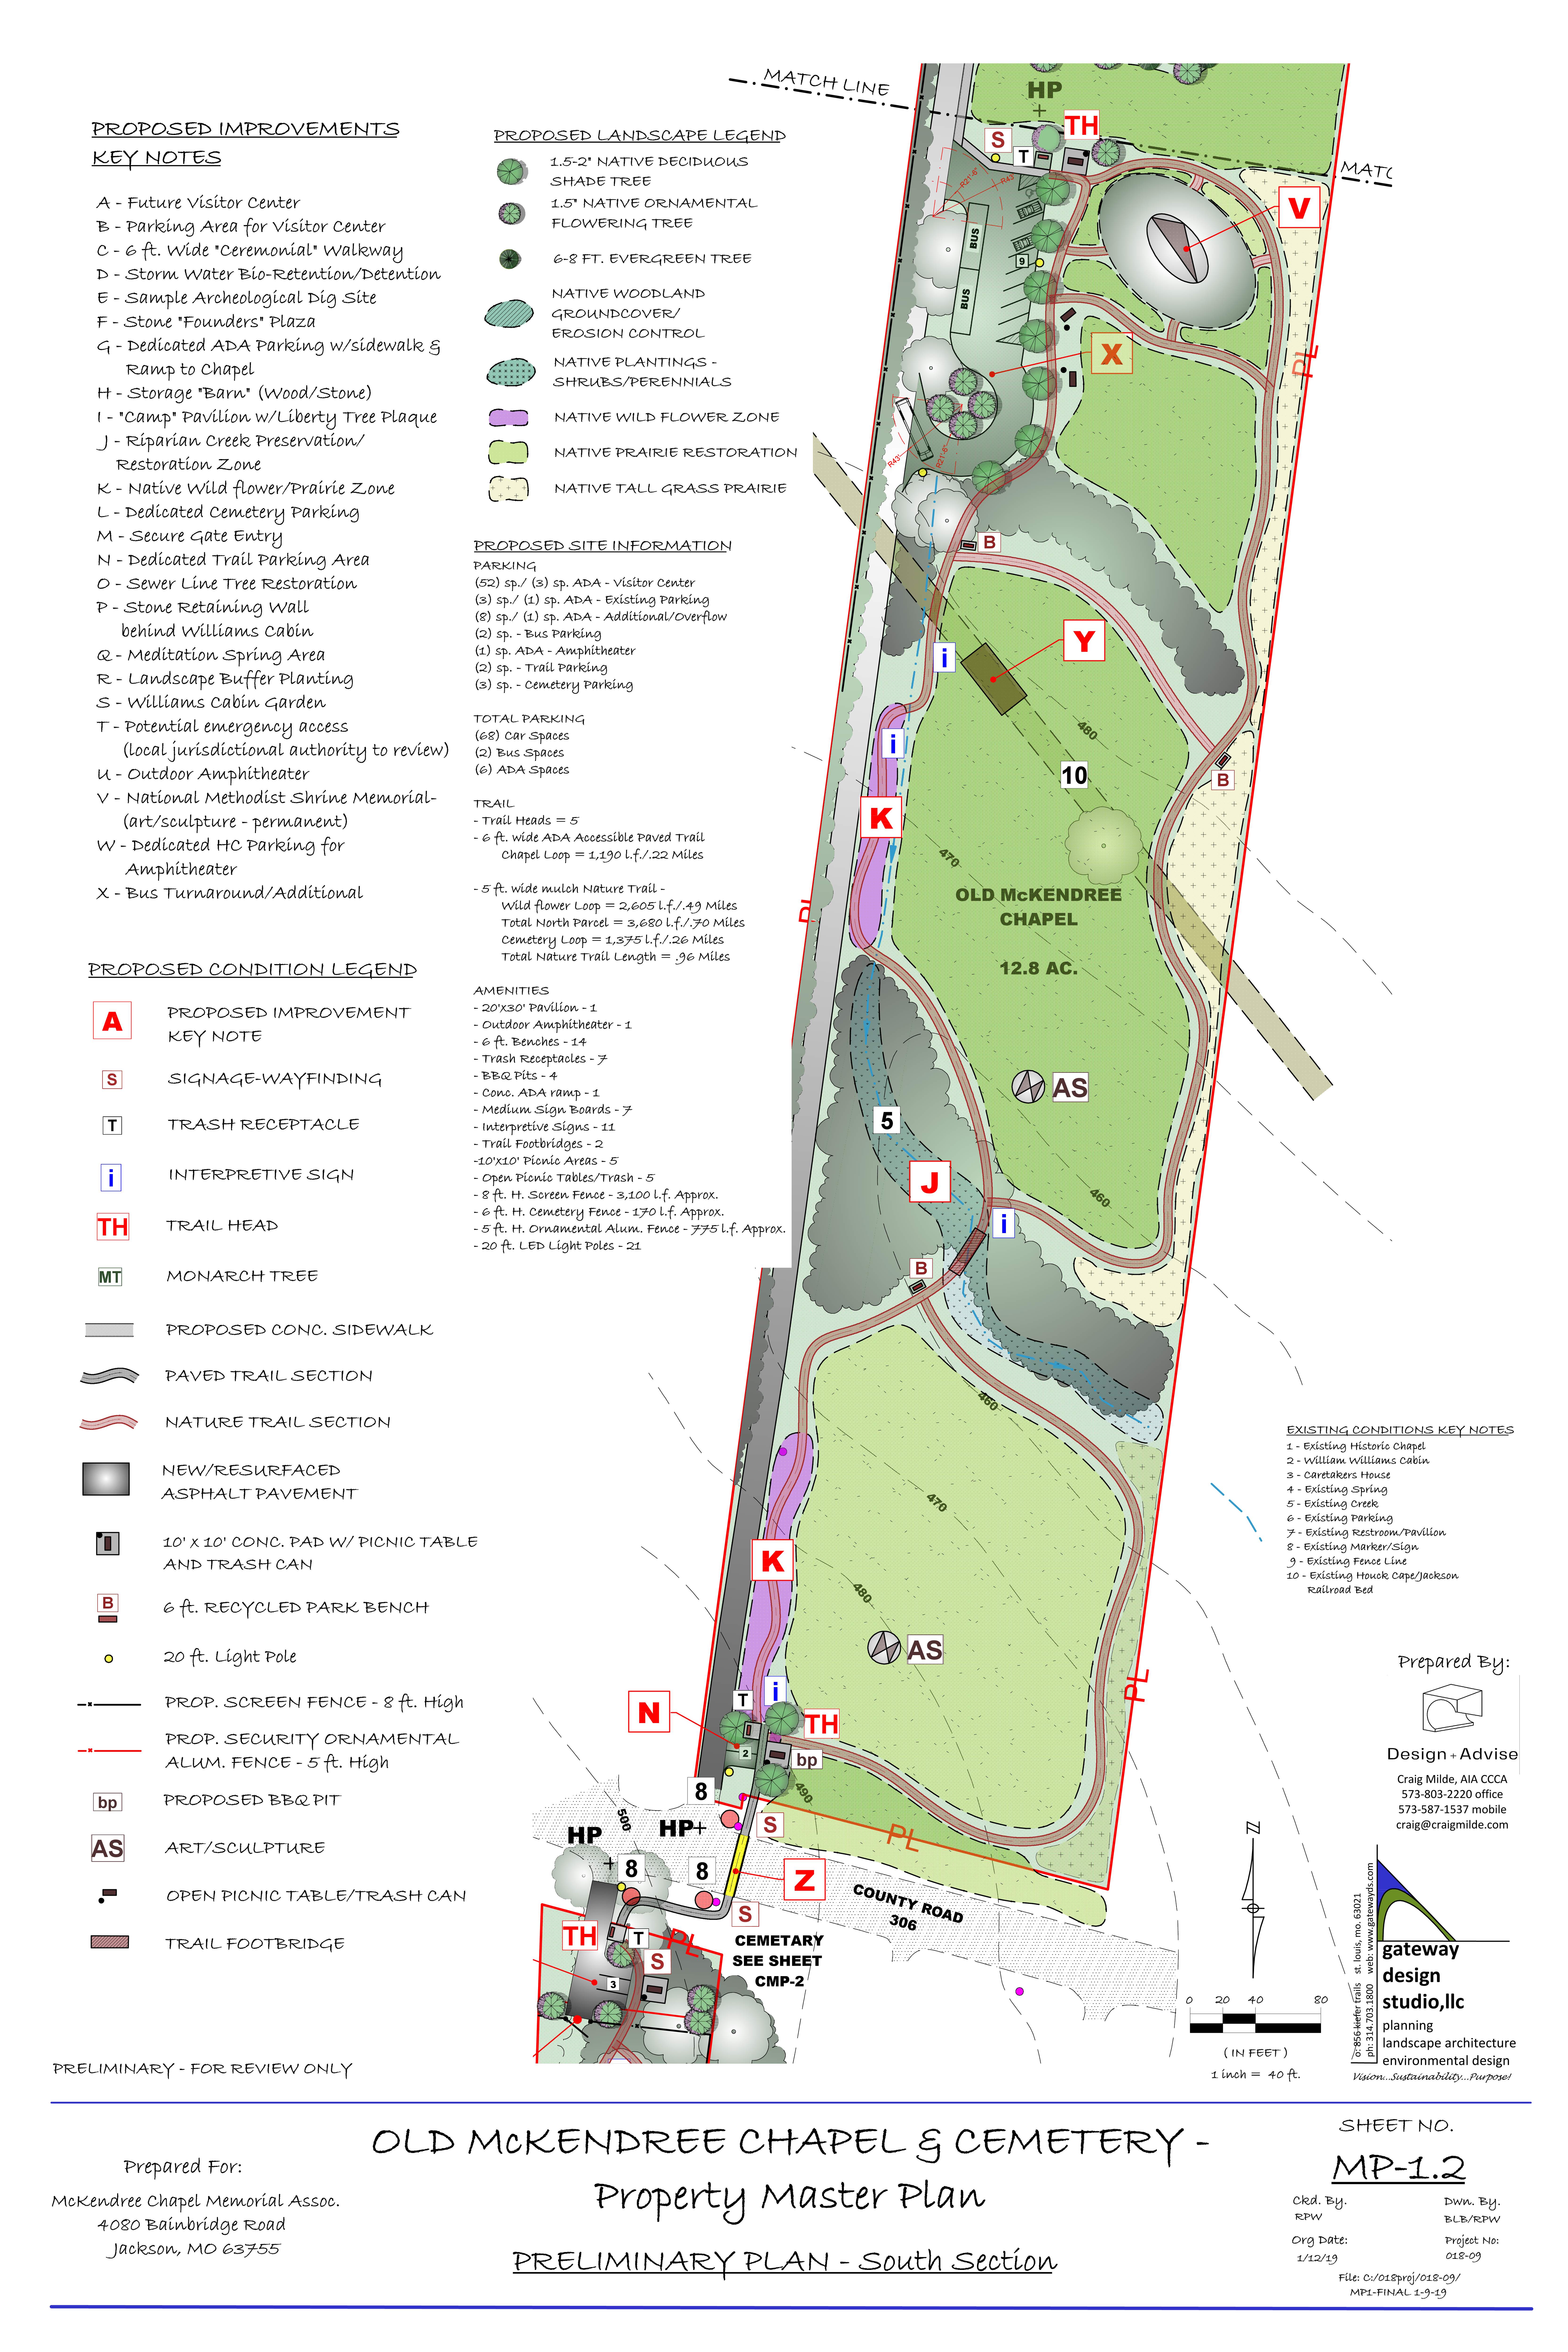 Master Plan - South Section